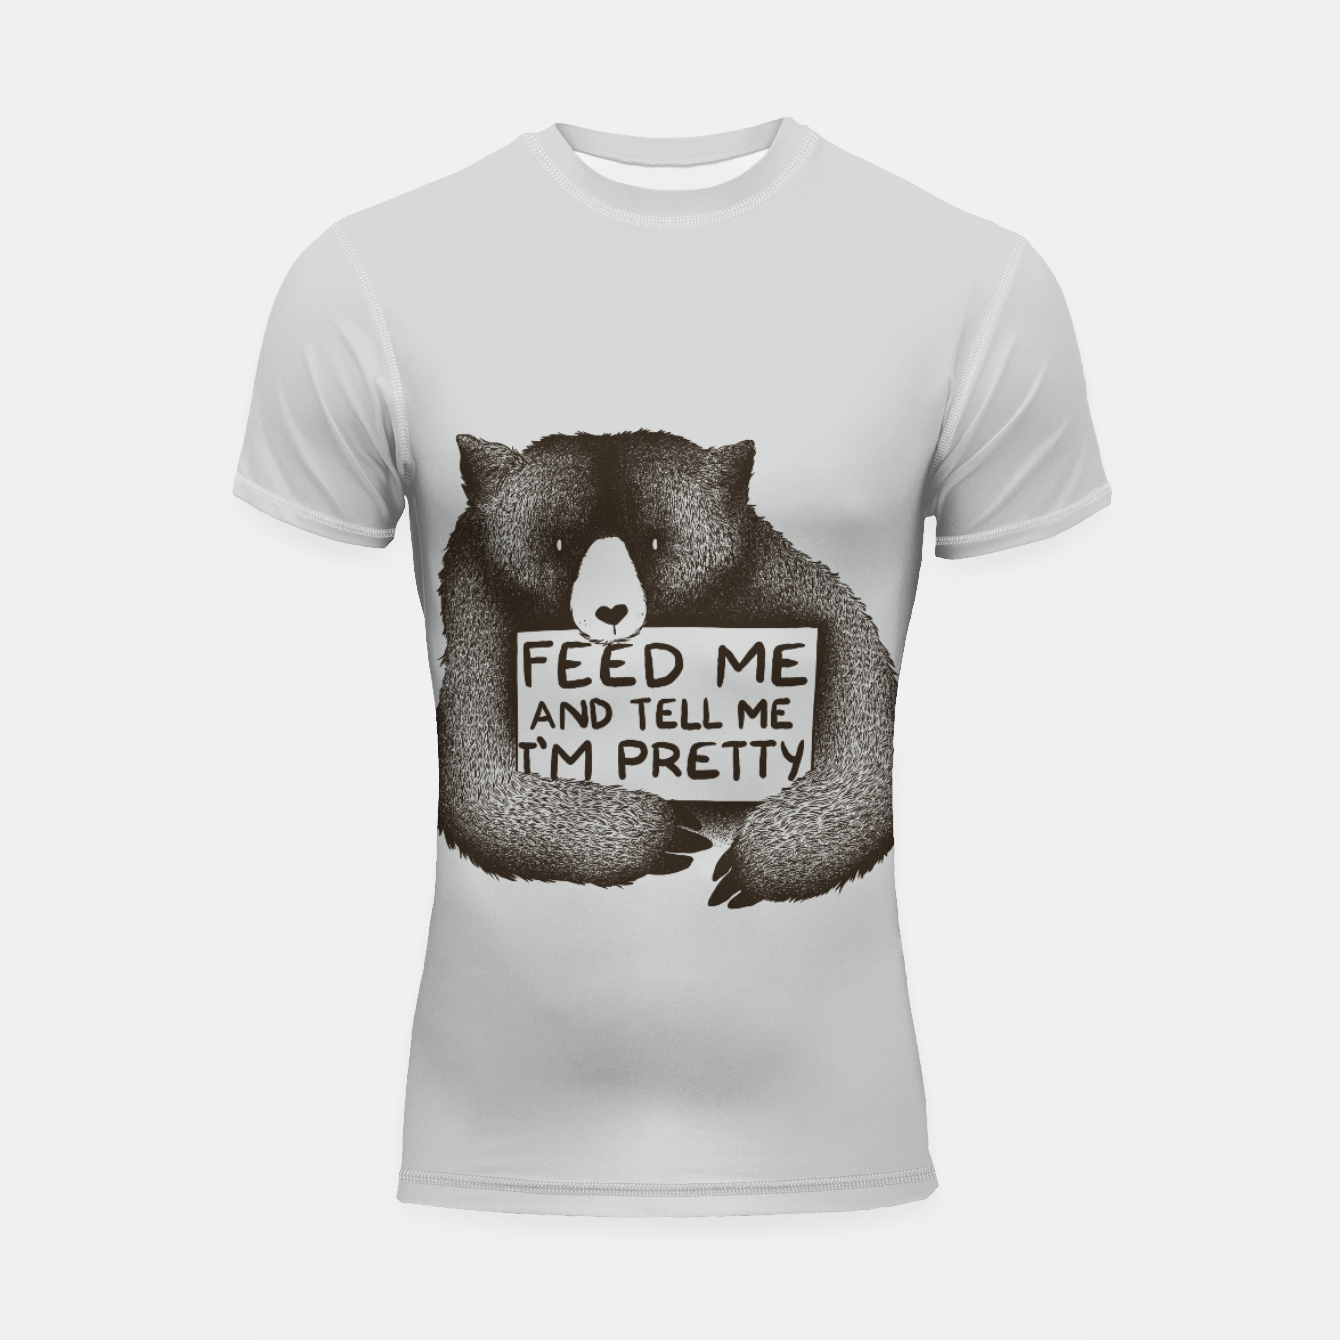 Feed me and tell me im pretty shirt instagram